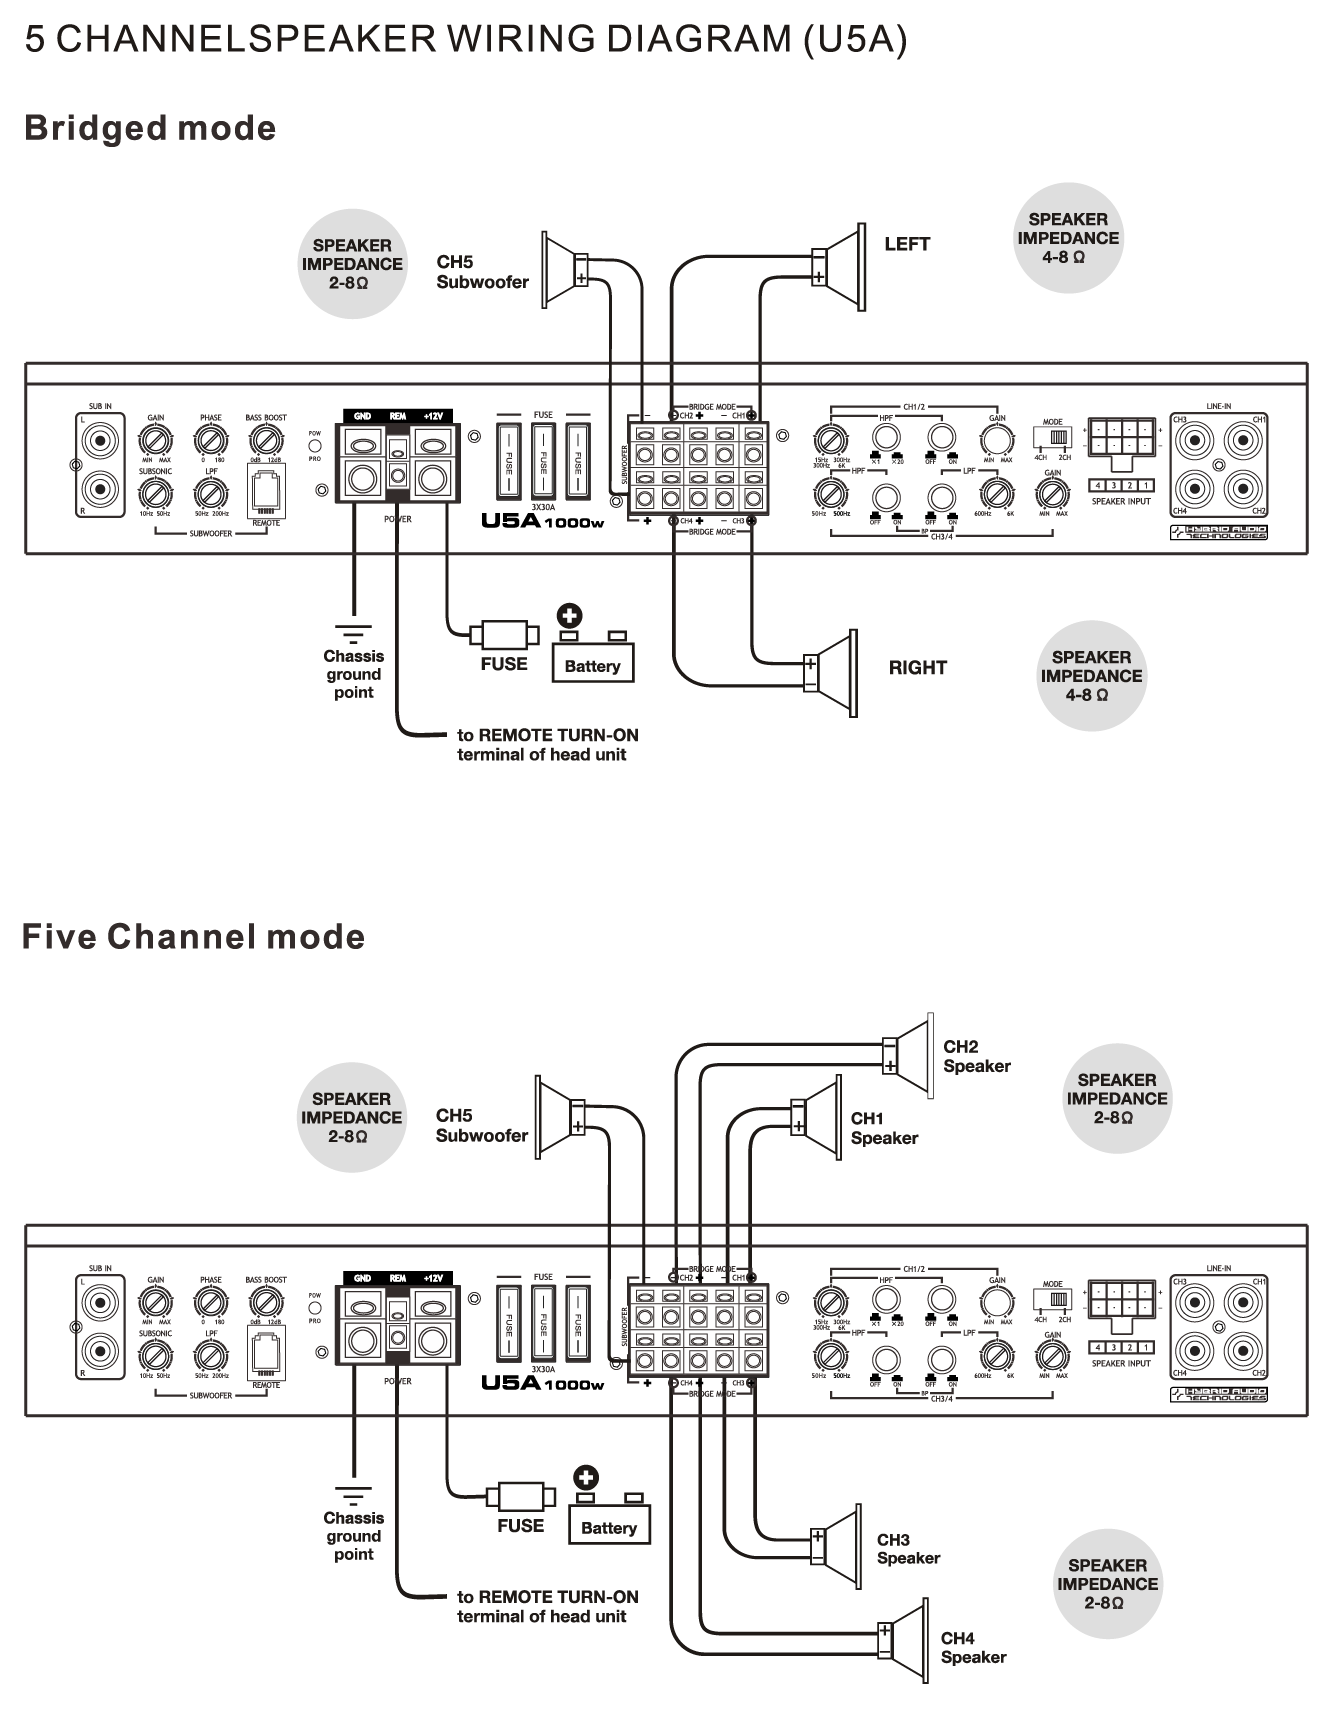 Amplifiers Hybrid Audio Technologies Speakers Wired In Parallel Recommended Amplifier Stable At 1 Ohm Mono Speaker Wiring Diagram